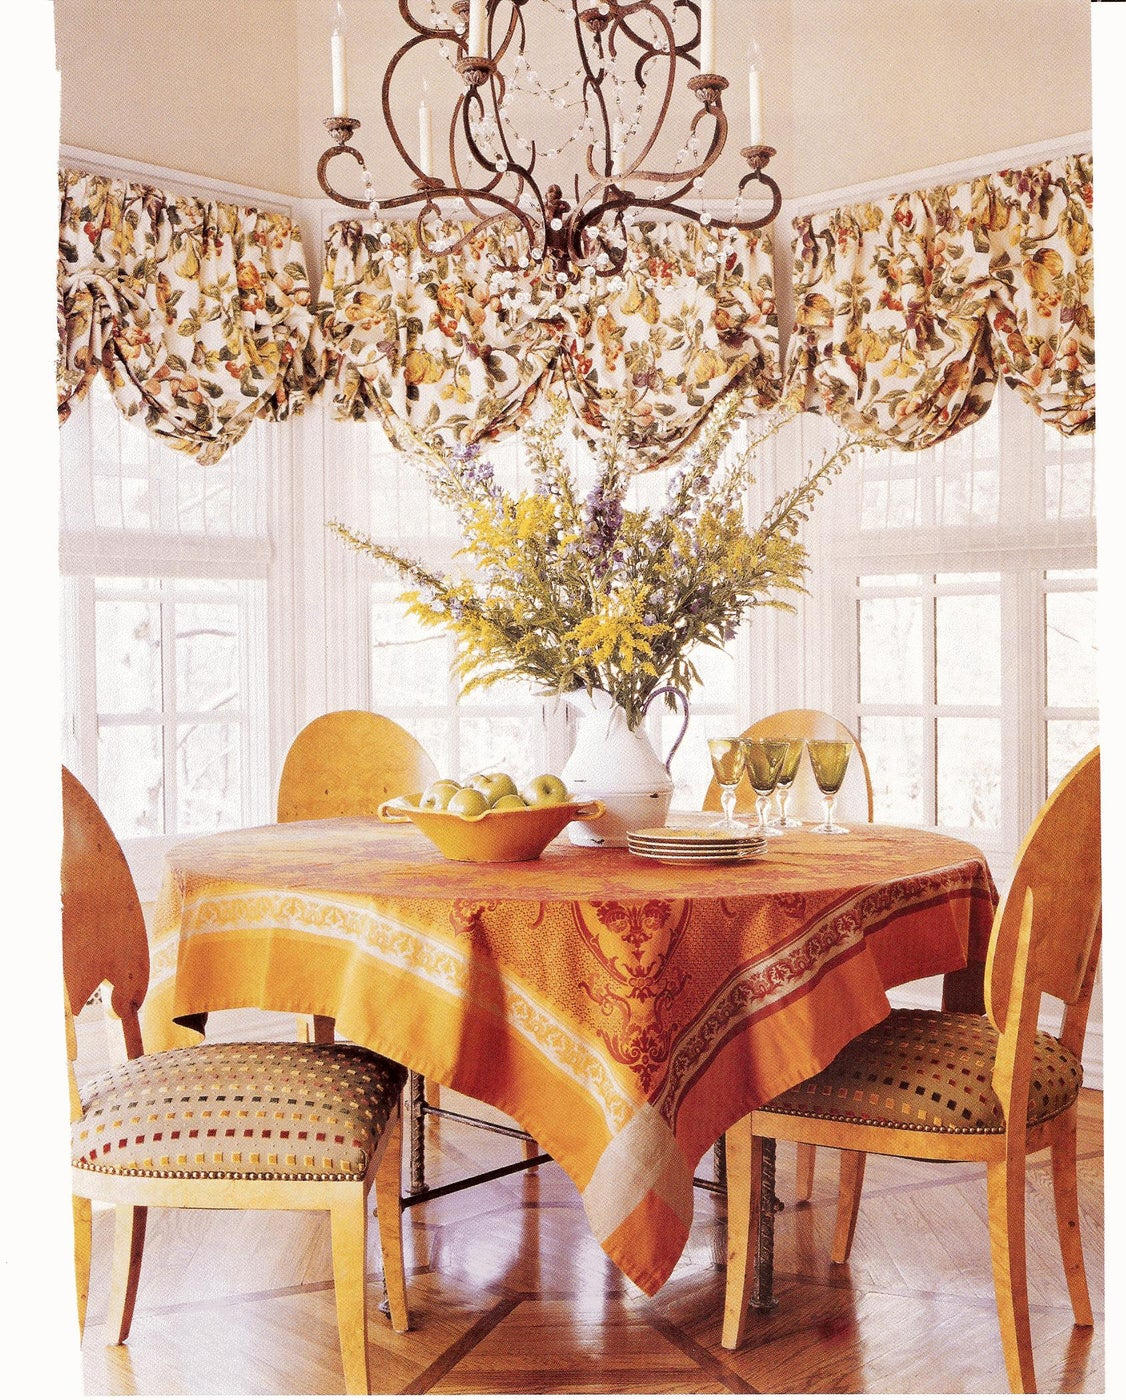 Bright and Cheerful Breakfast Room